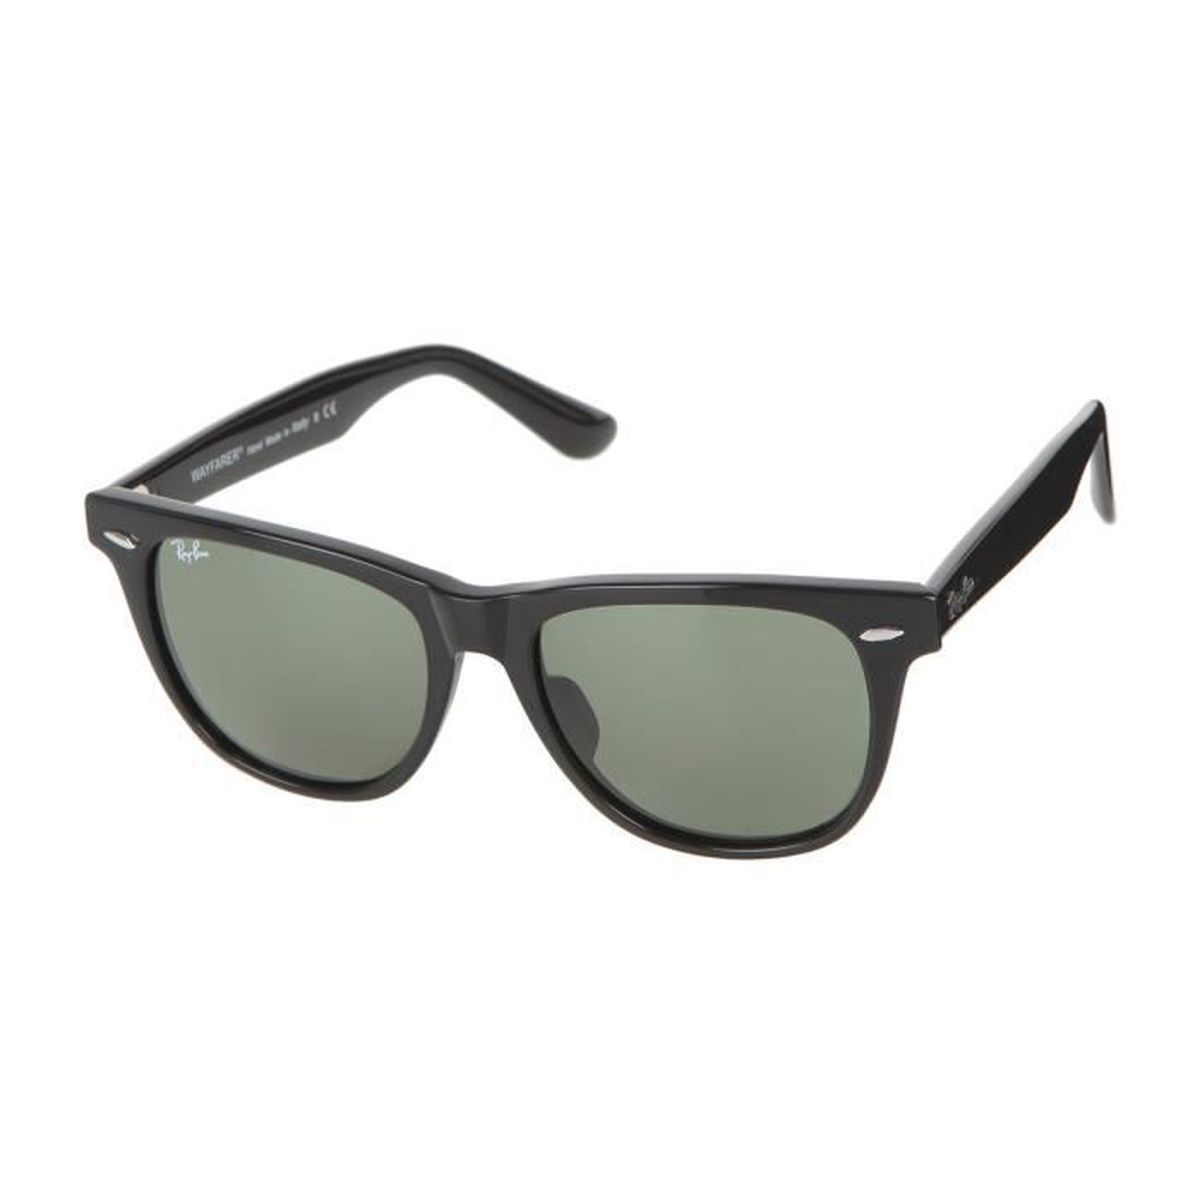 007305ef5 Ray ban vintage - Achat / Vente pas cher